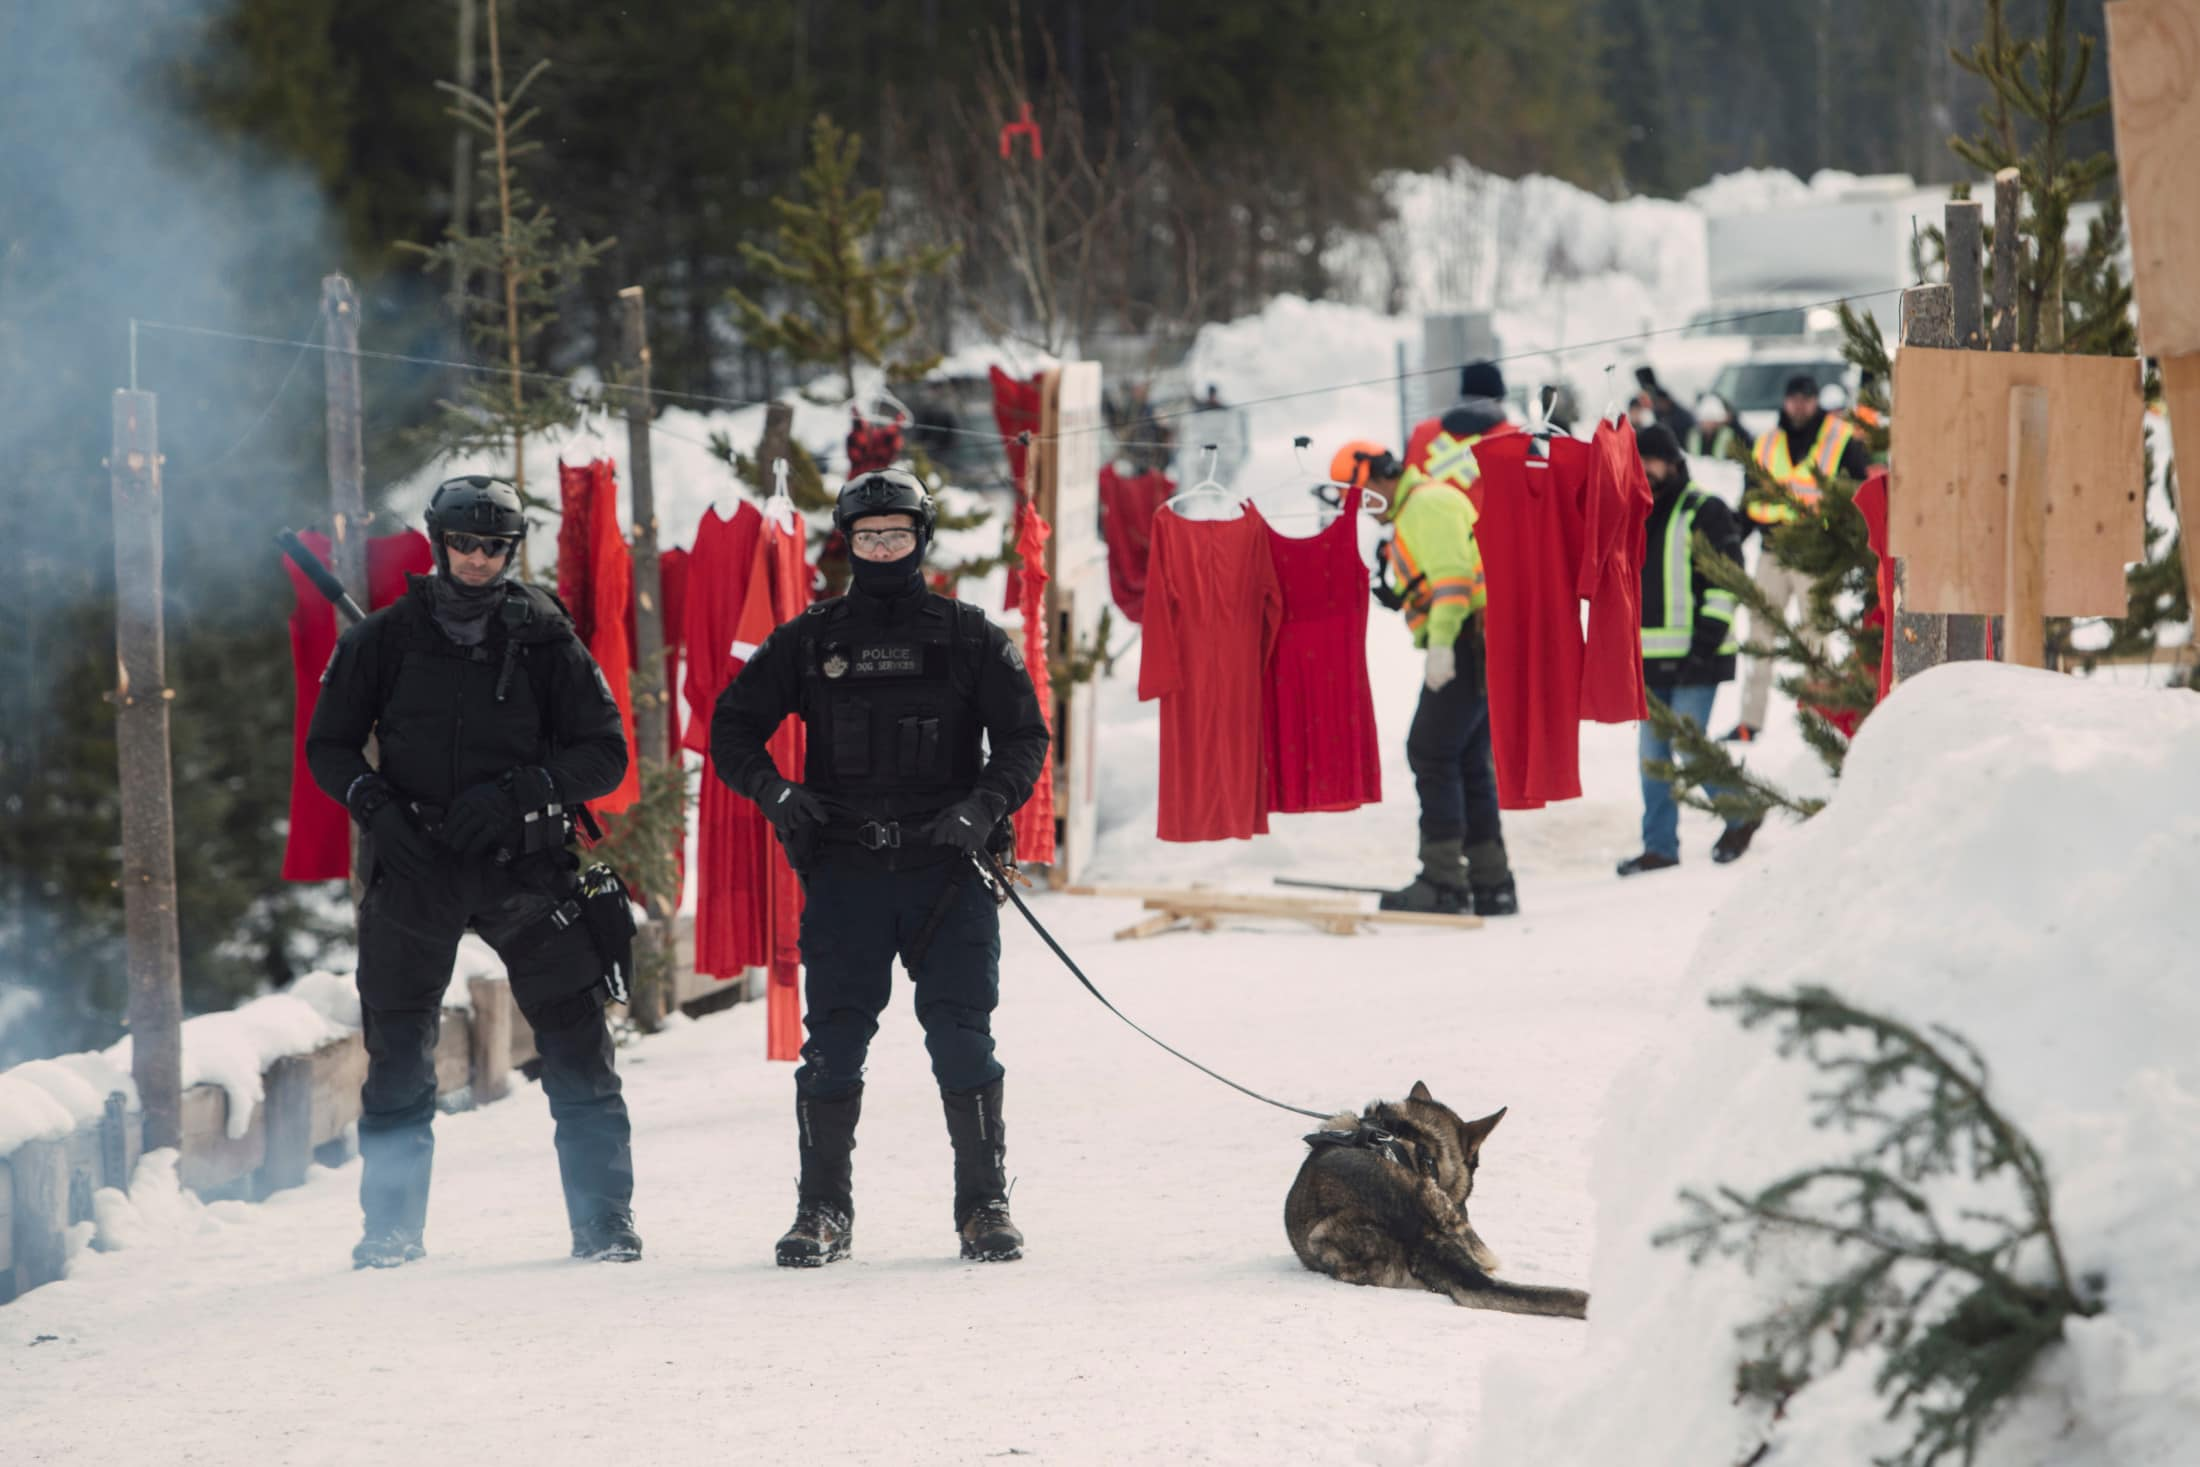 RCMP Unist'ot'en camp arrests red dresses Wet'suwet'en Coastal GasLink